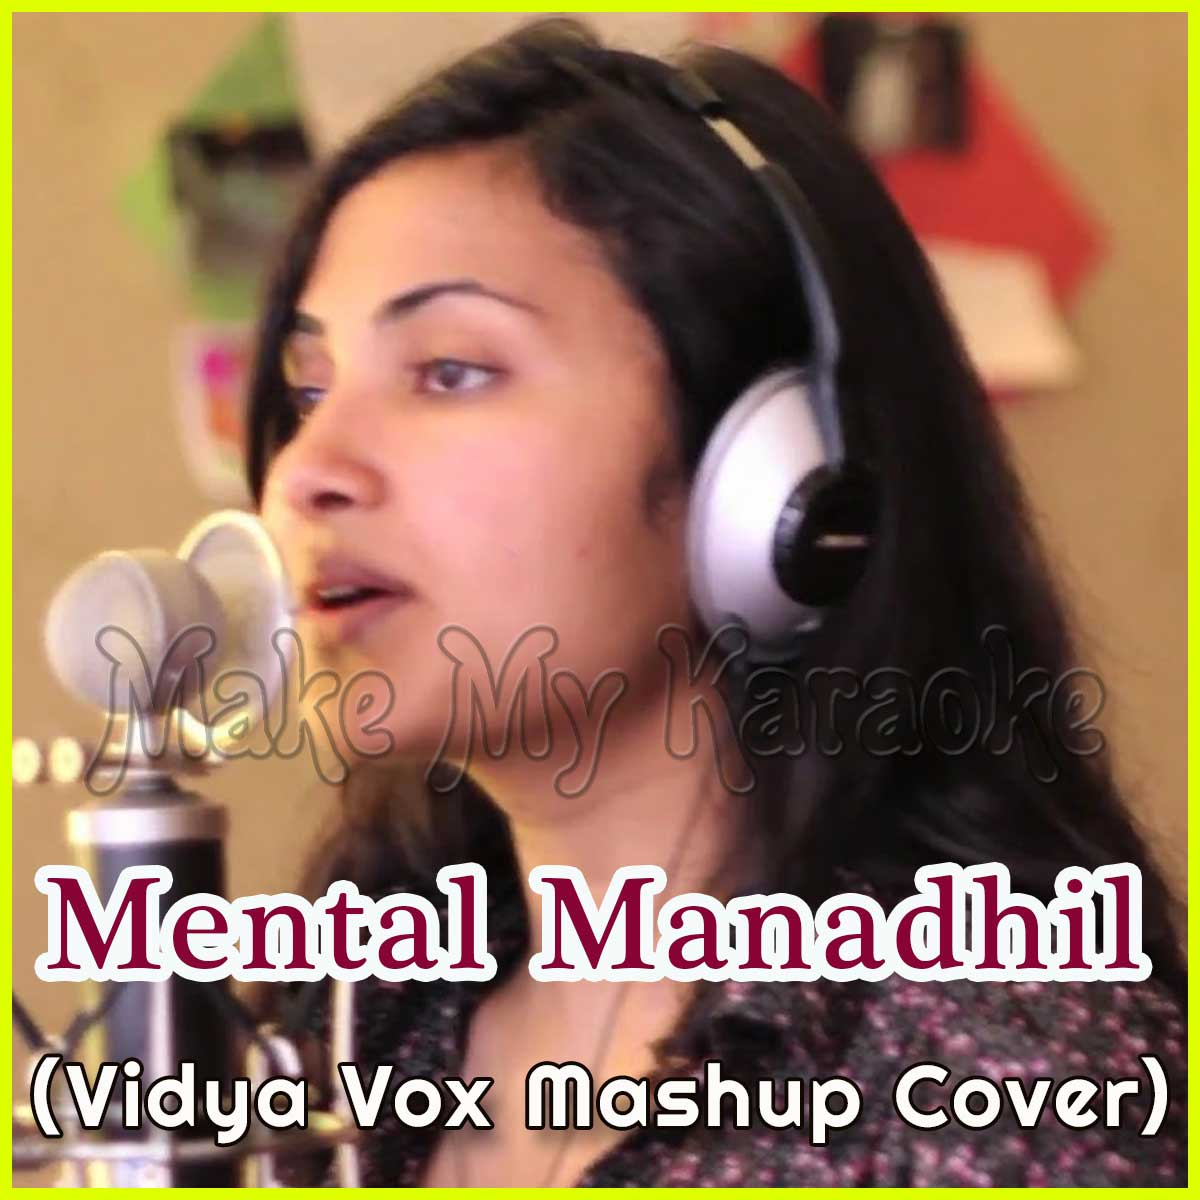 blank space mental manadhil mp3 song